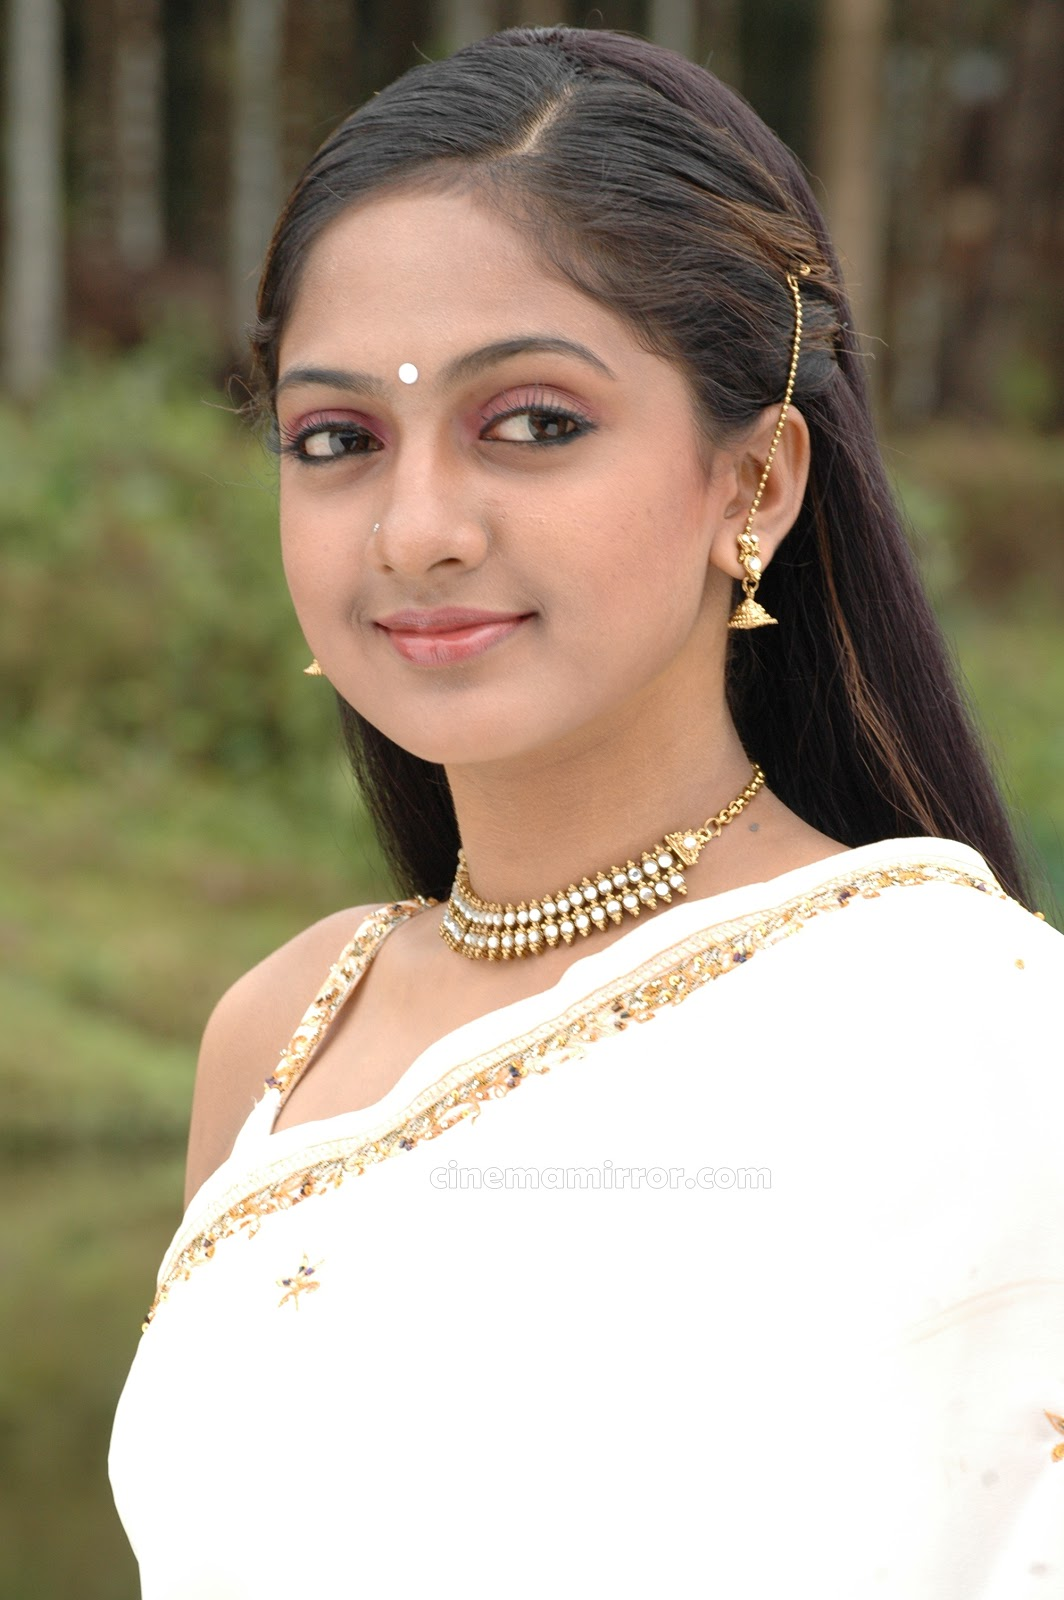 Hot Actress Hot Photos Sheela Malayalam Actress Hot-7559